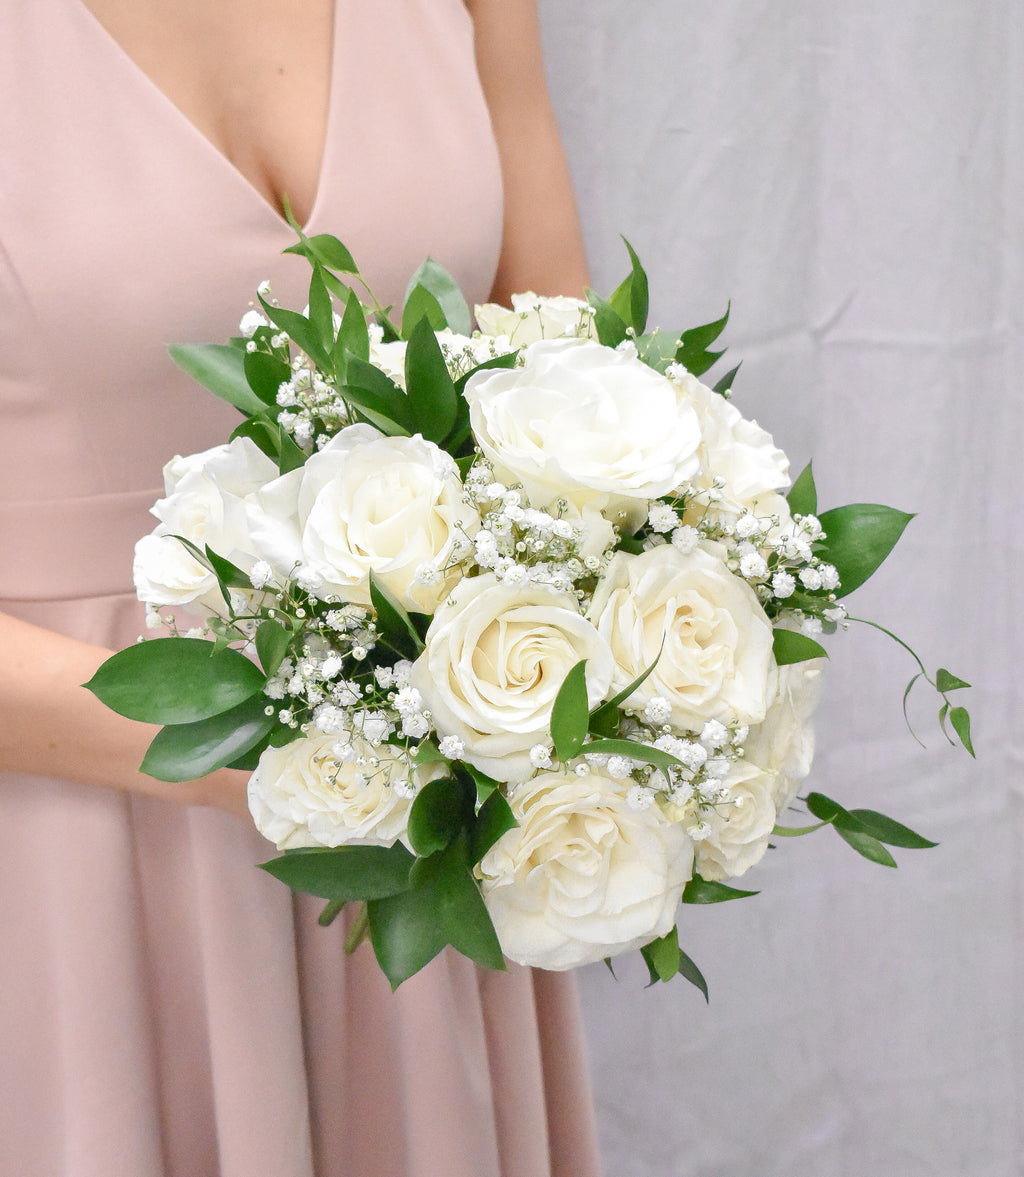 10-12 Roses Hand Tied Prom Special